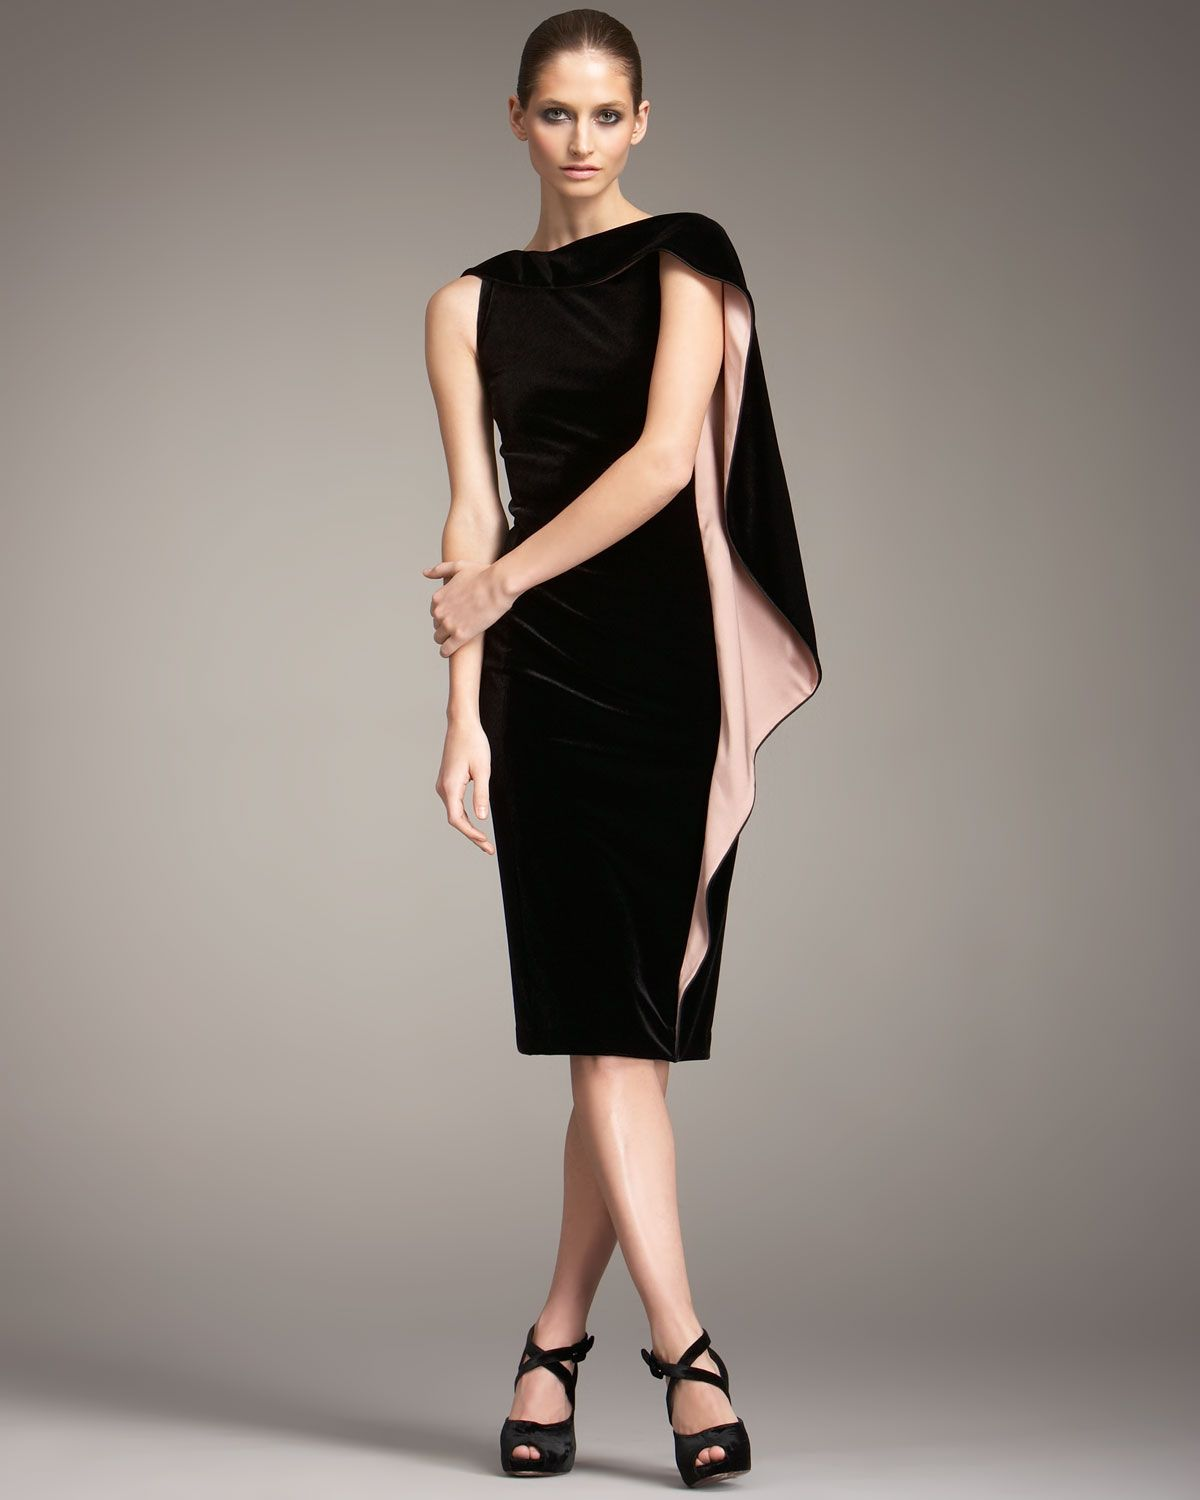 Black Dress With Cascading Cape Sleeve Contrasting Lining In Powder Pink Understated Elegant Style Giorgio Armani